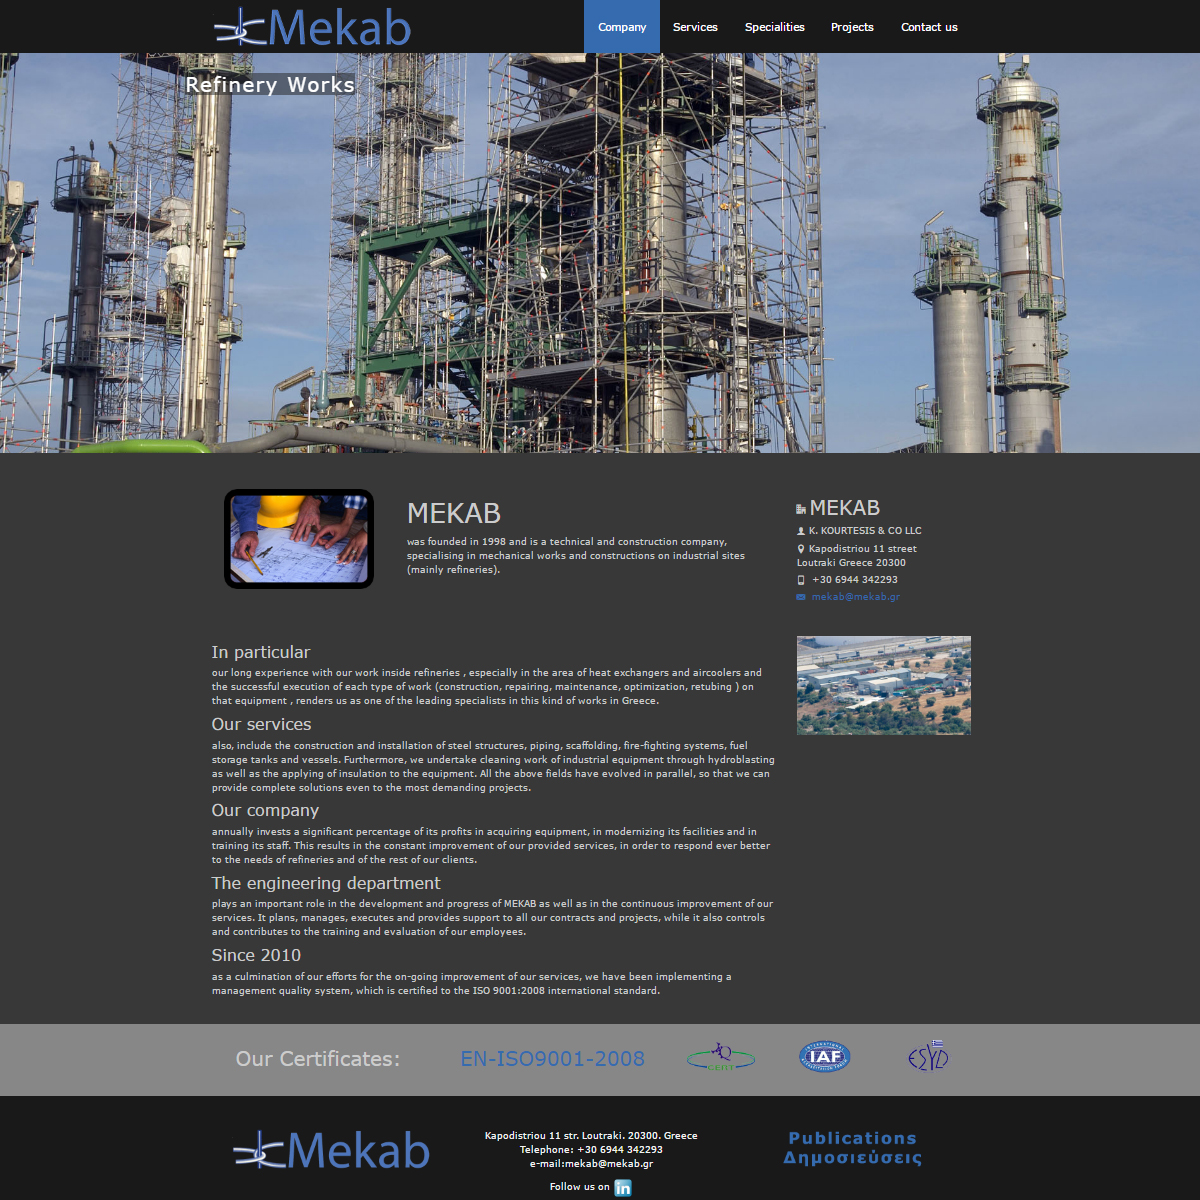 mekab-dynamic-website-full-image